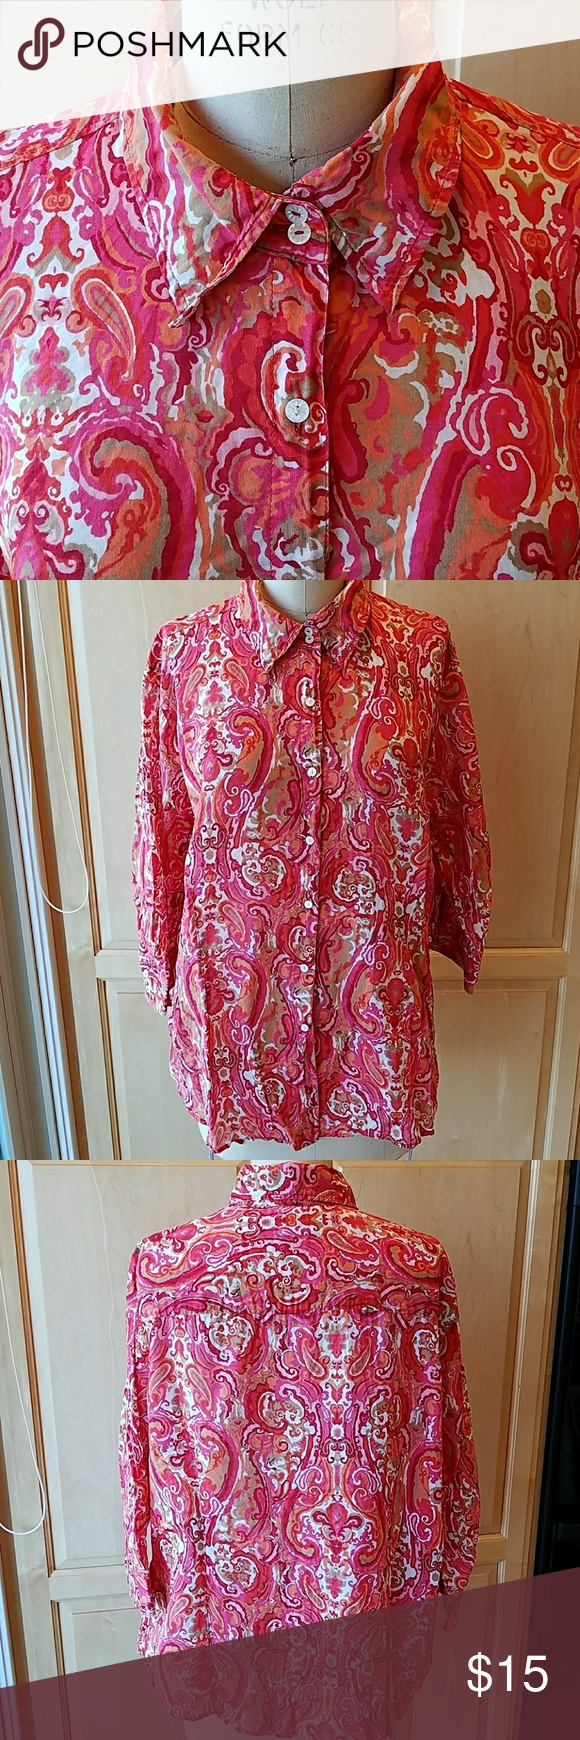 Tommy Hilfiger lightweight cotton top Colorful paisley print on 100%cotton Excellent used condition Pretty pearly buttons 3/4 length sleeves Perfect for spring Tommy Hilfiger Tops Button Down Shirts